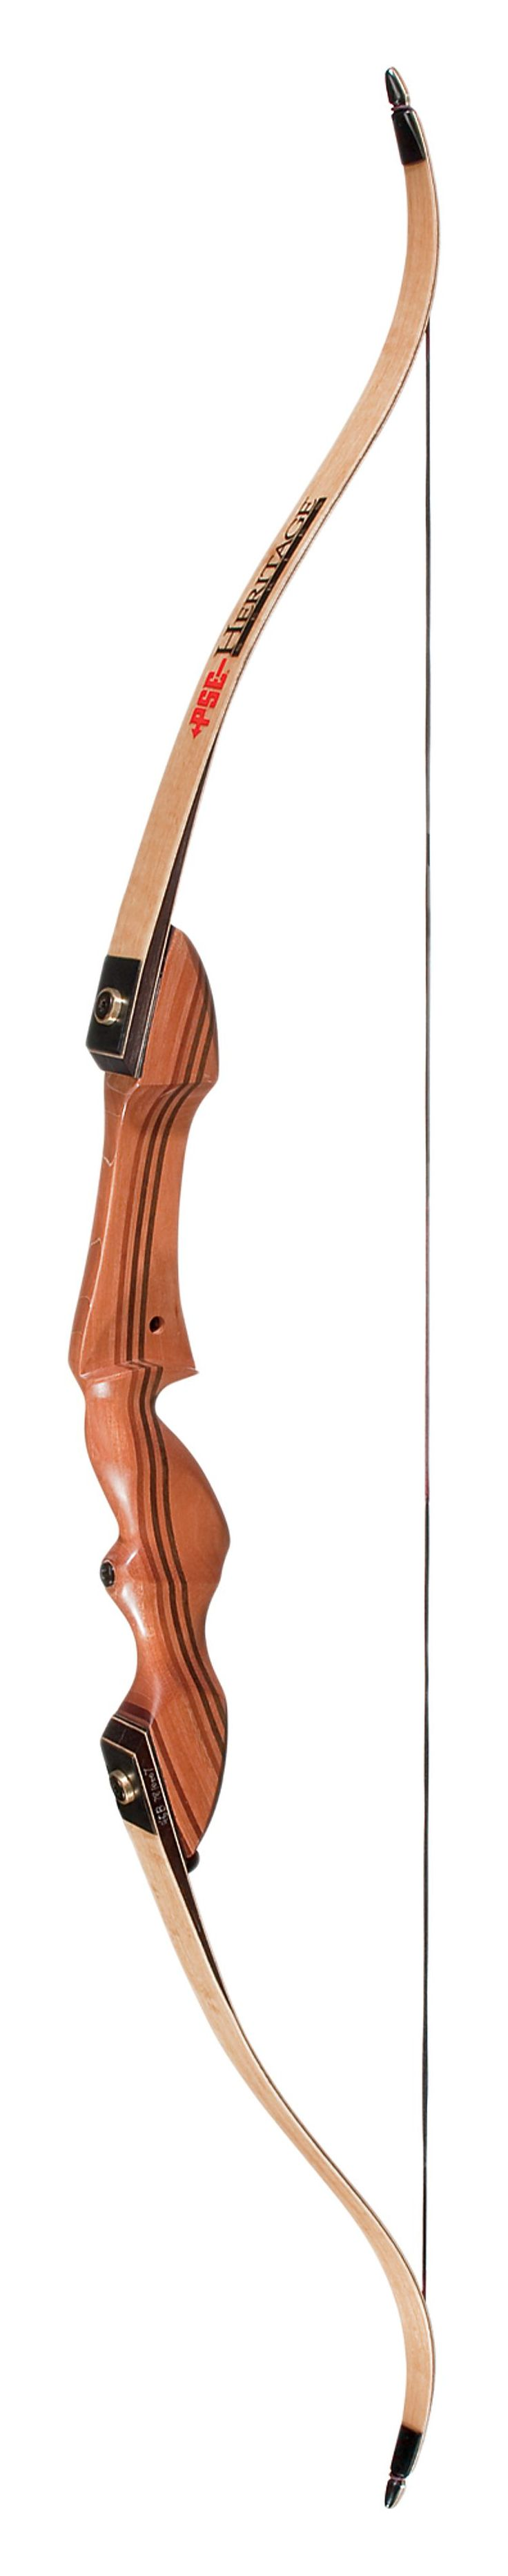 PSE Archery Mustang Recurve Bow: Bass Pro Shops